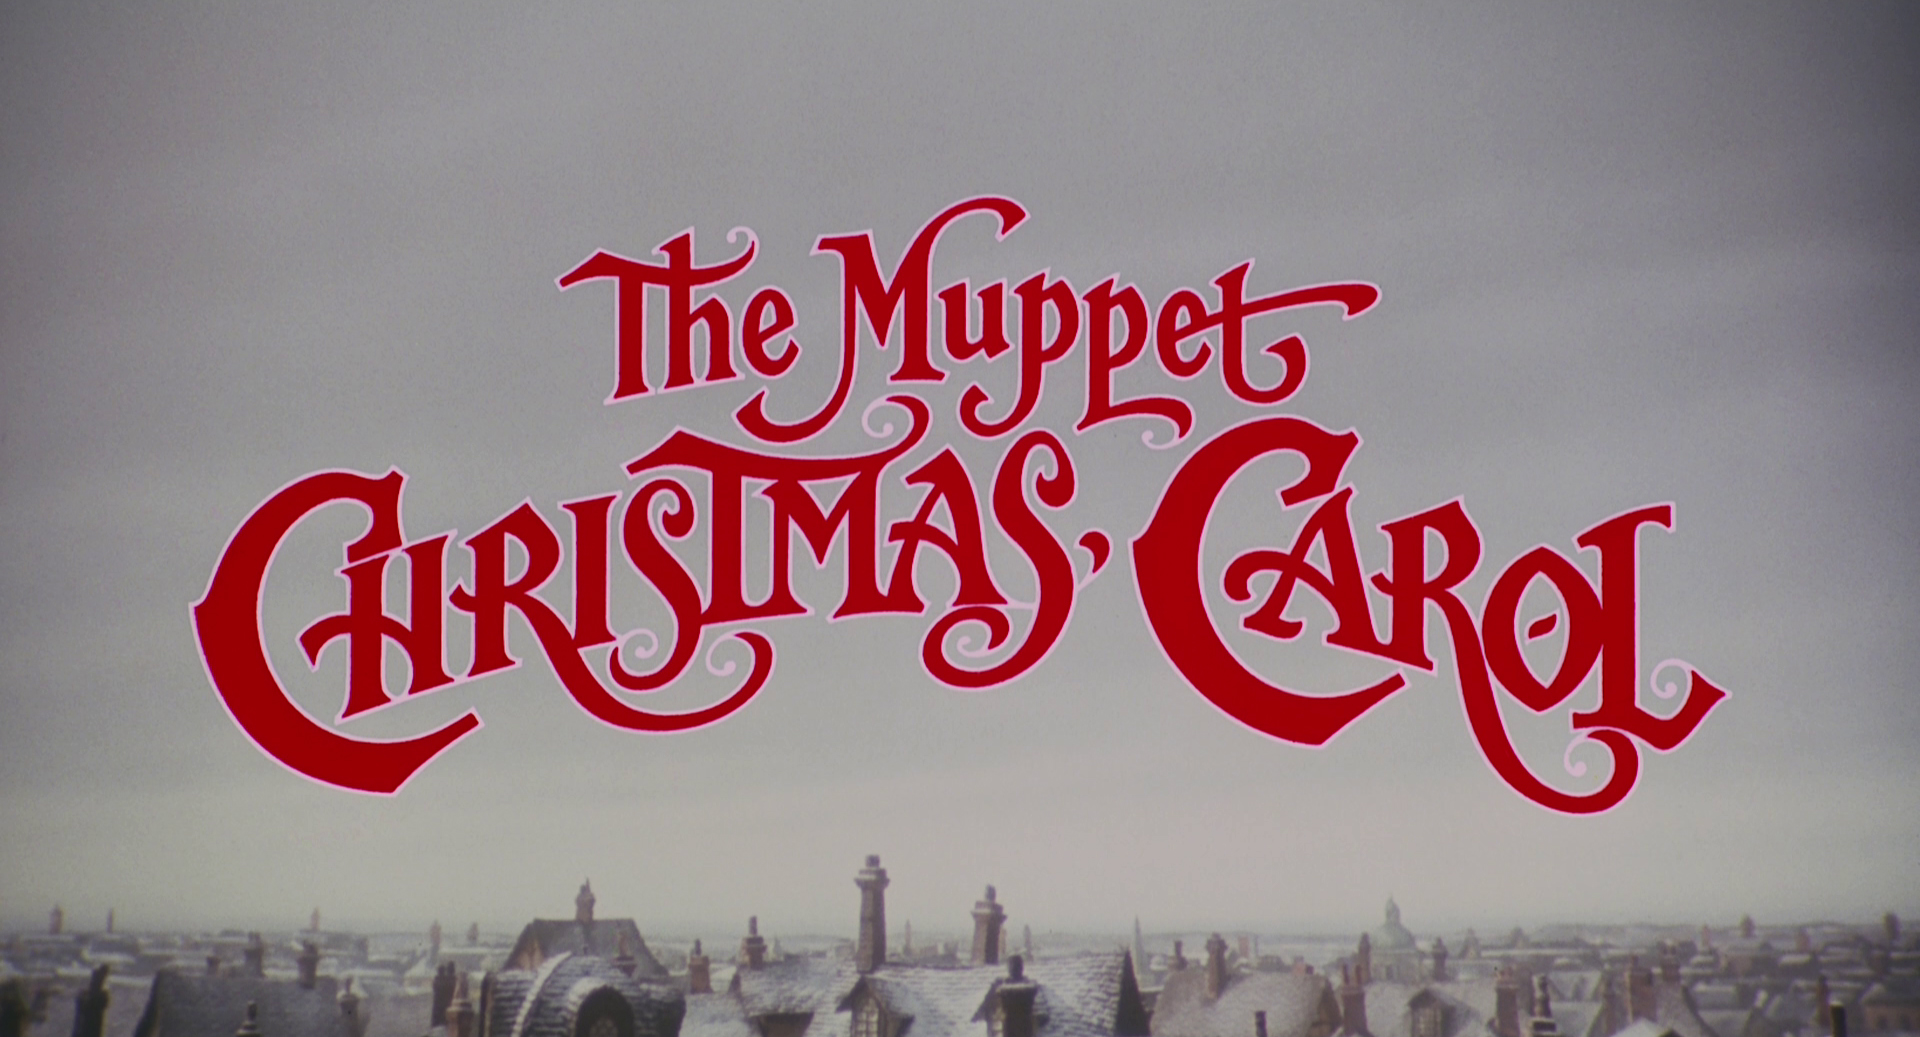 Muppet Christmas Carol Vhs.The Muppet Christmas Carol Christmas Specials Wiki